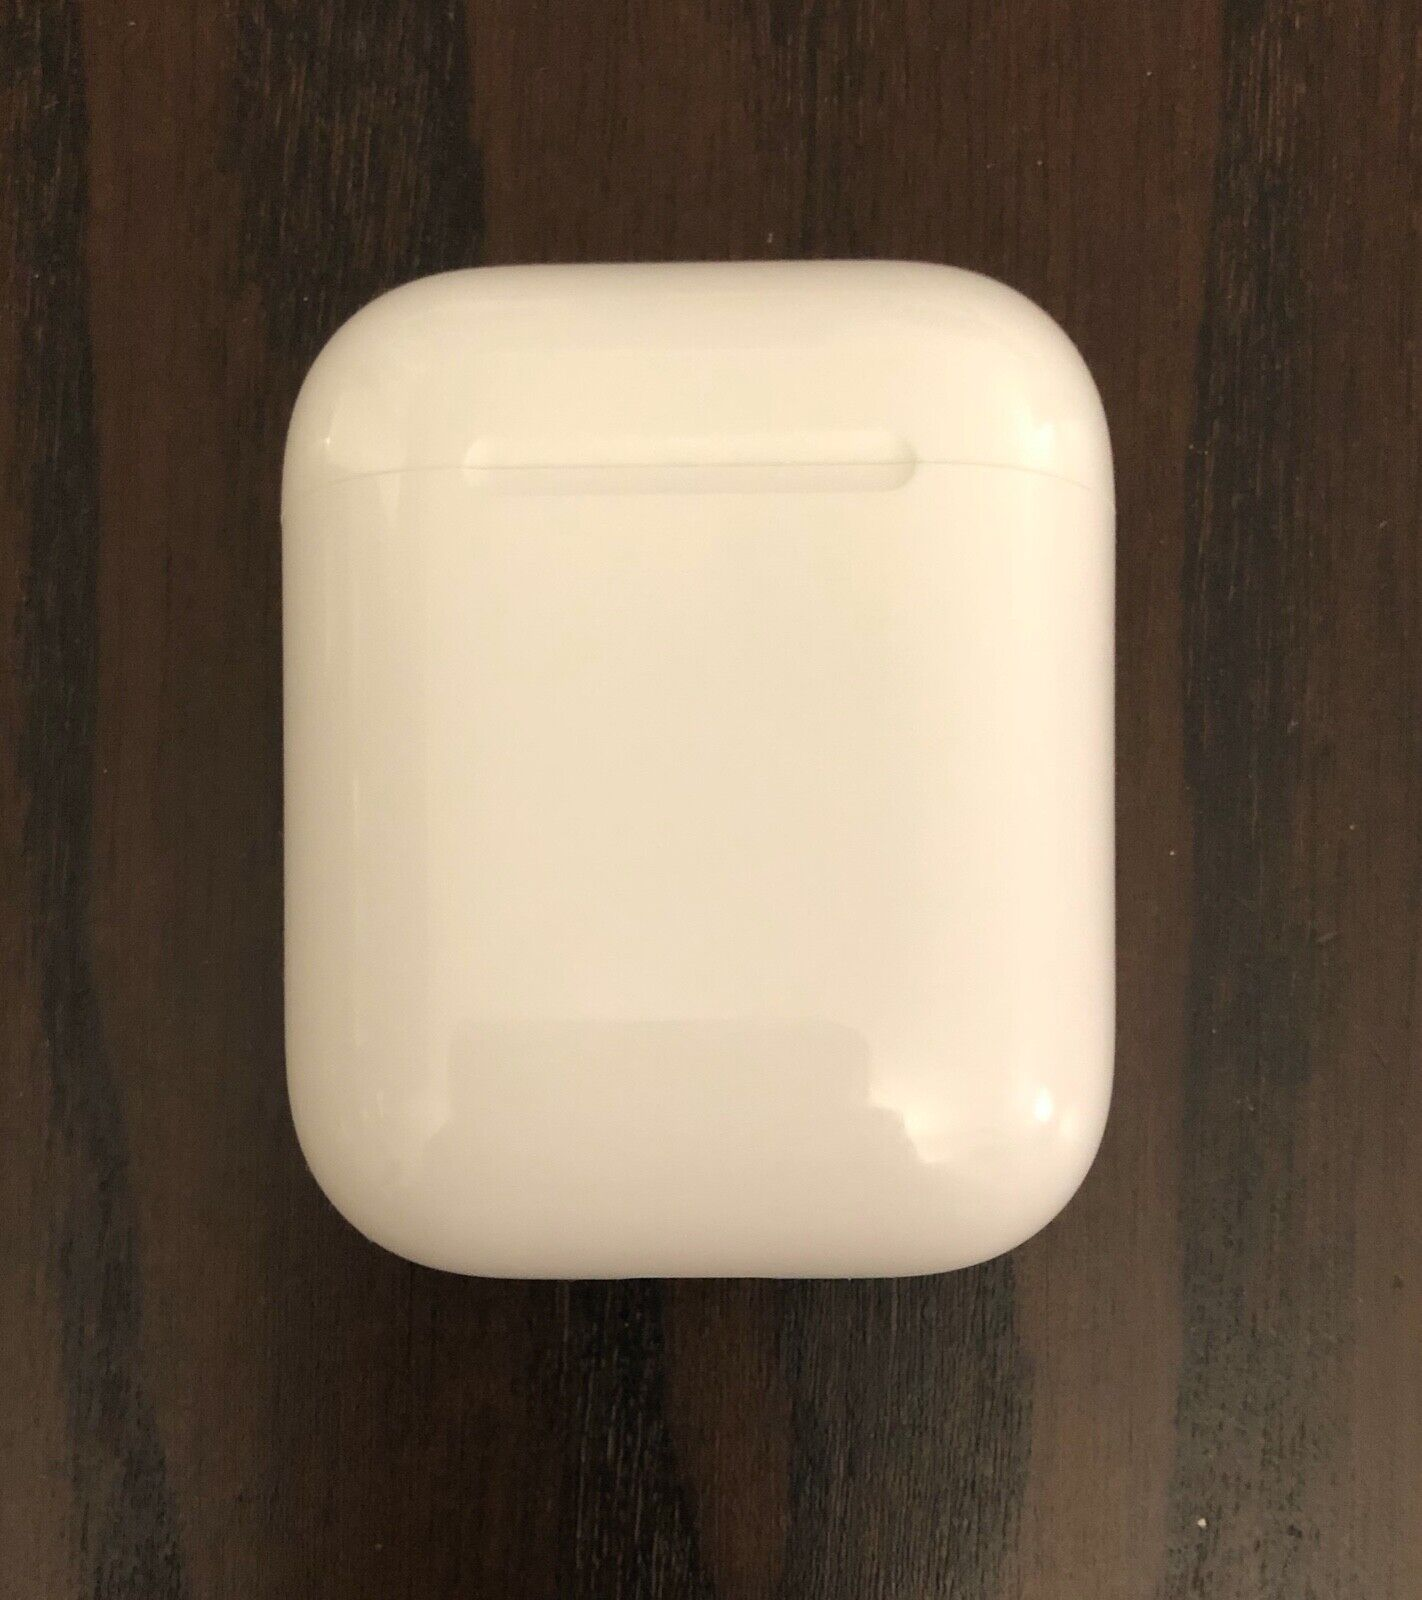 Genuine Apple AirPods Wired Charging Case Only AirPods NOT Included  - $26.99